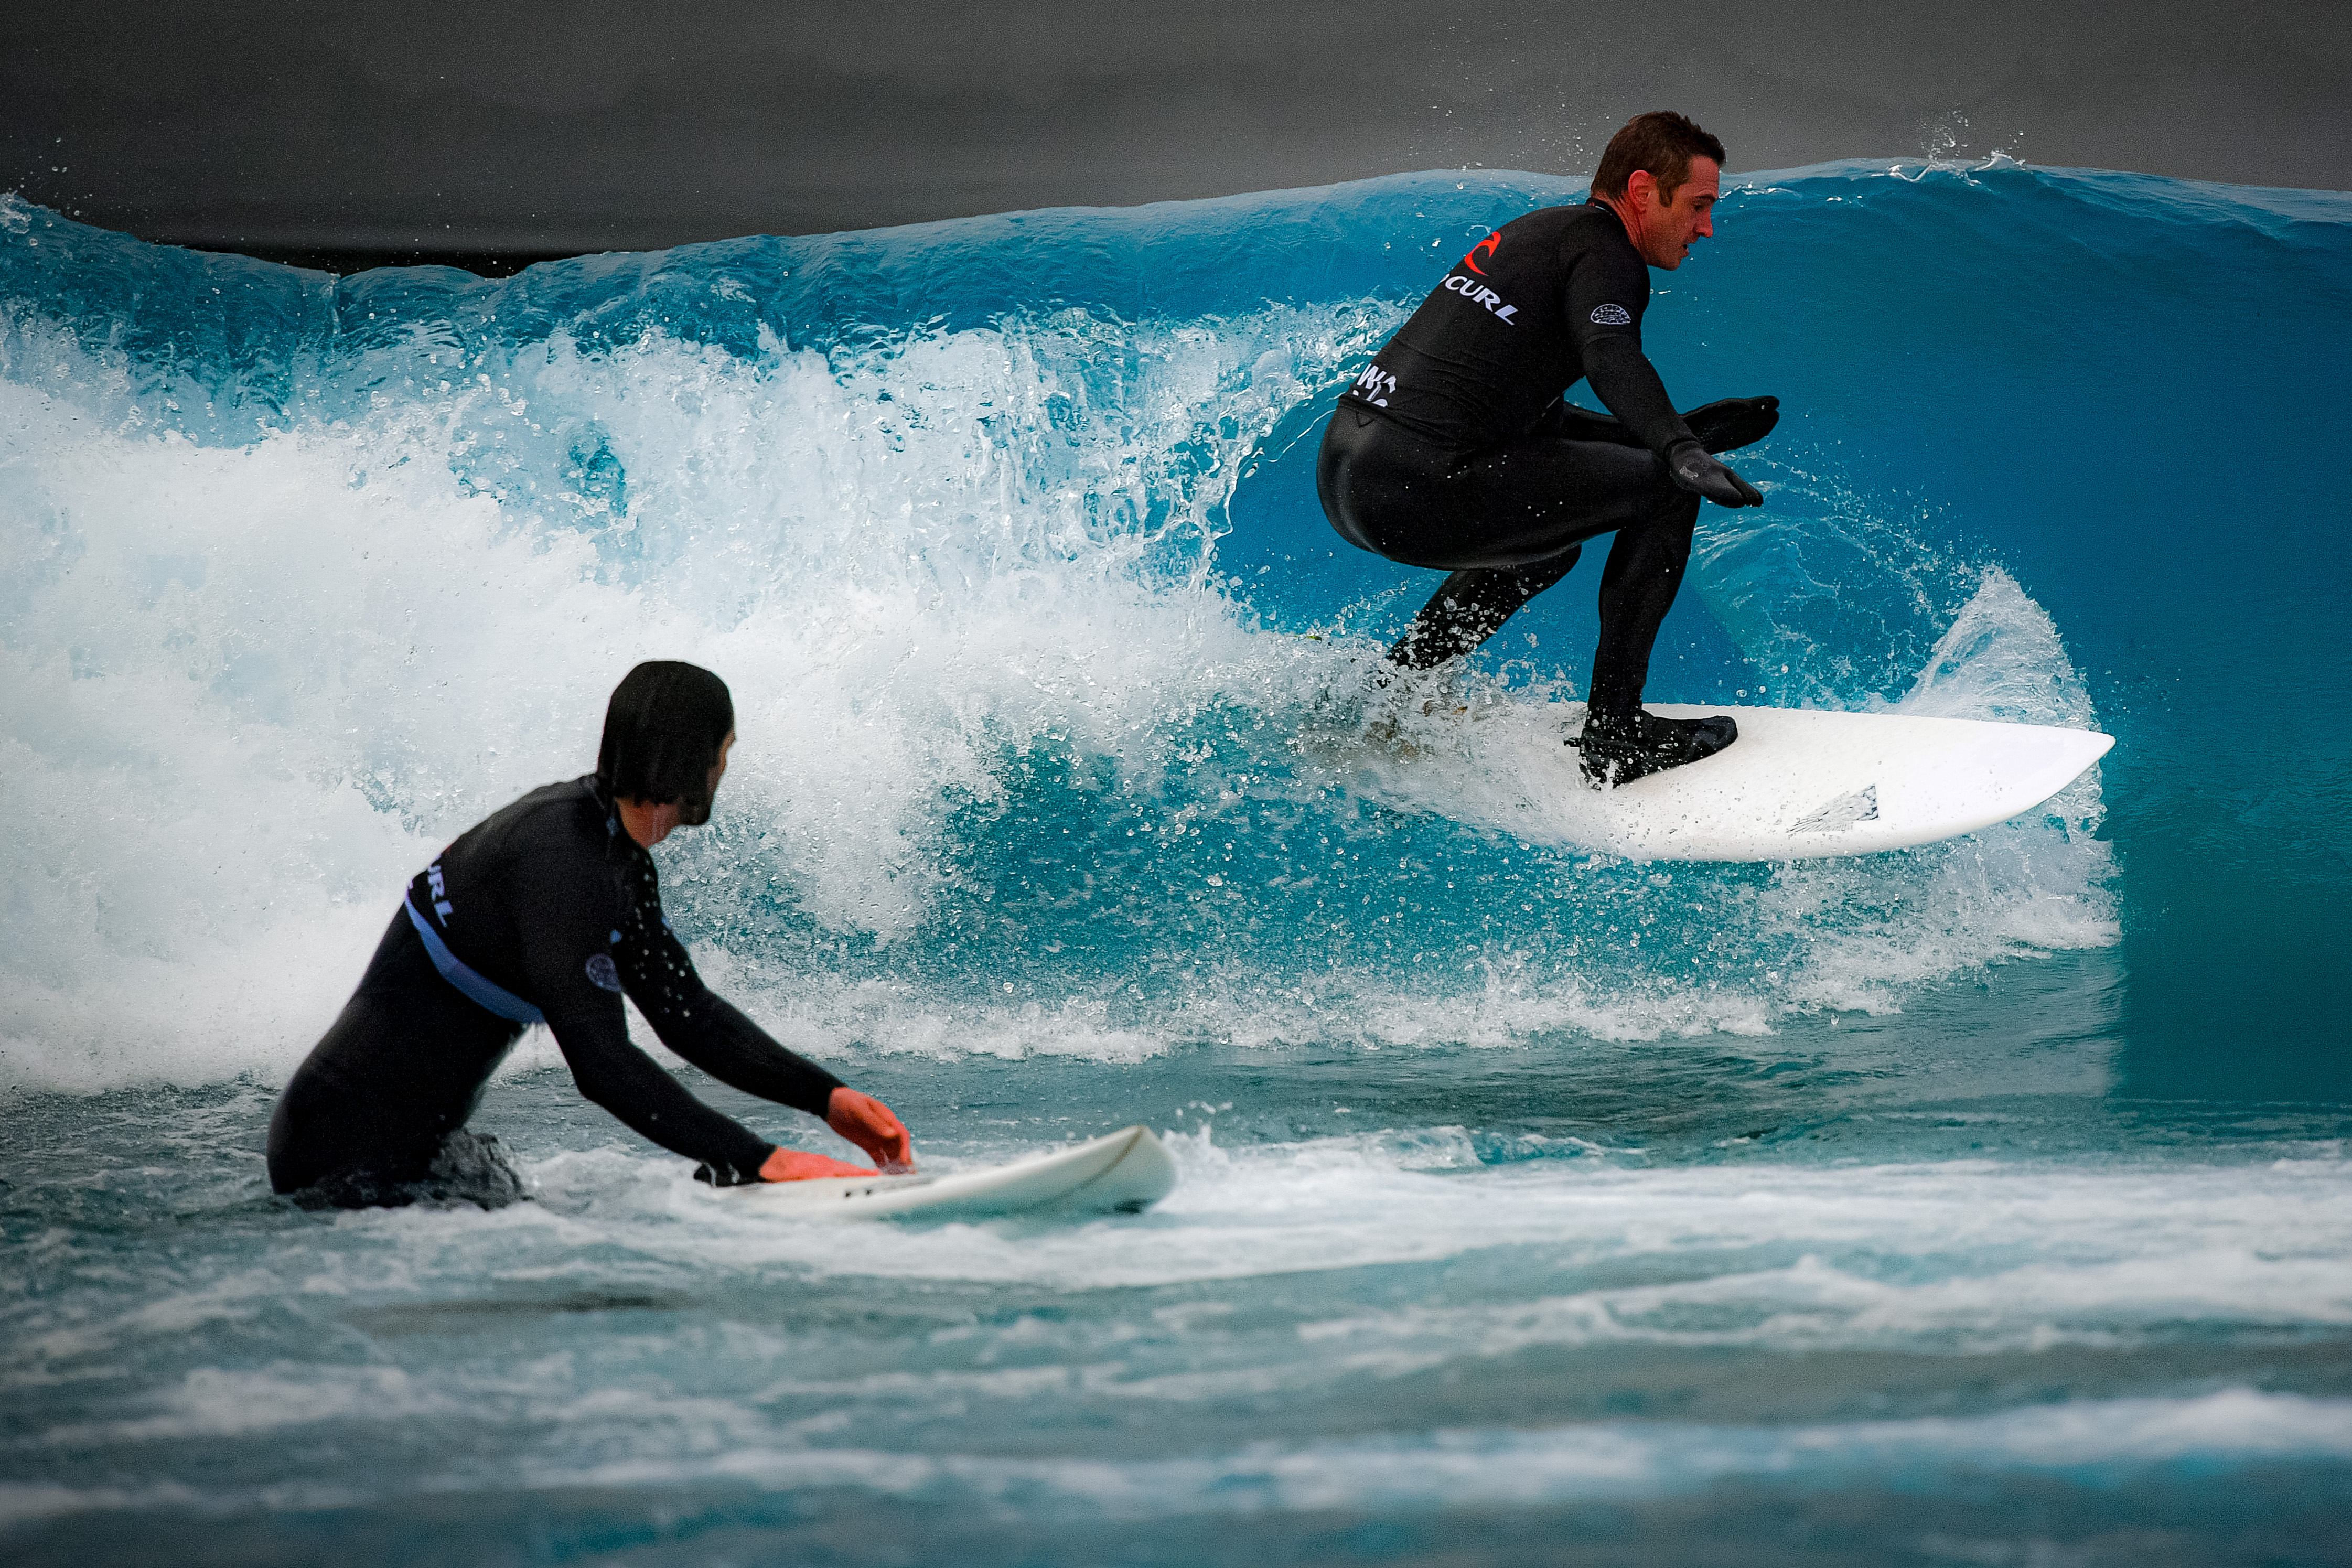 <p>People surfing at The Wave in Bristol following the easing of England's lockdown to allow far greater freedom outdoors. Picture date: Monday March 29, 2021. (Photo by Ben Birchall/PA Images via Getty Images)</p>